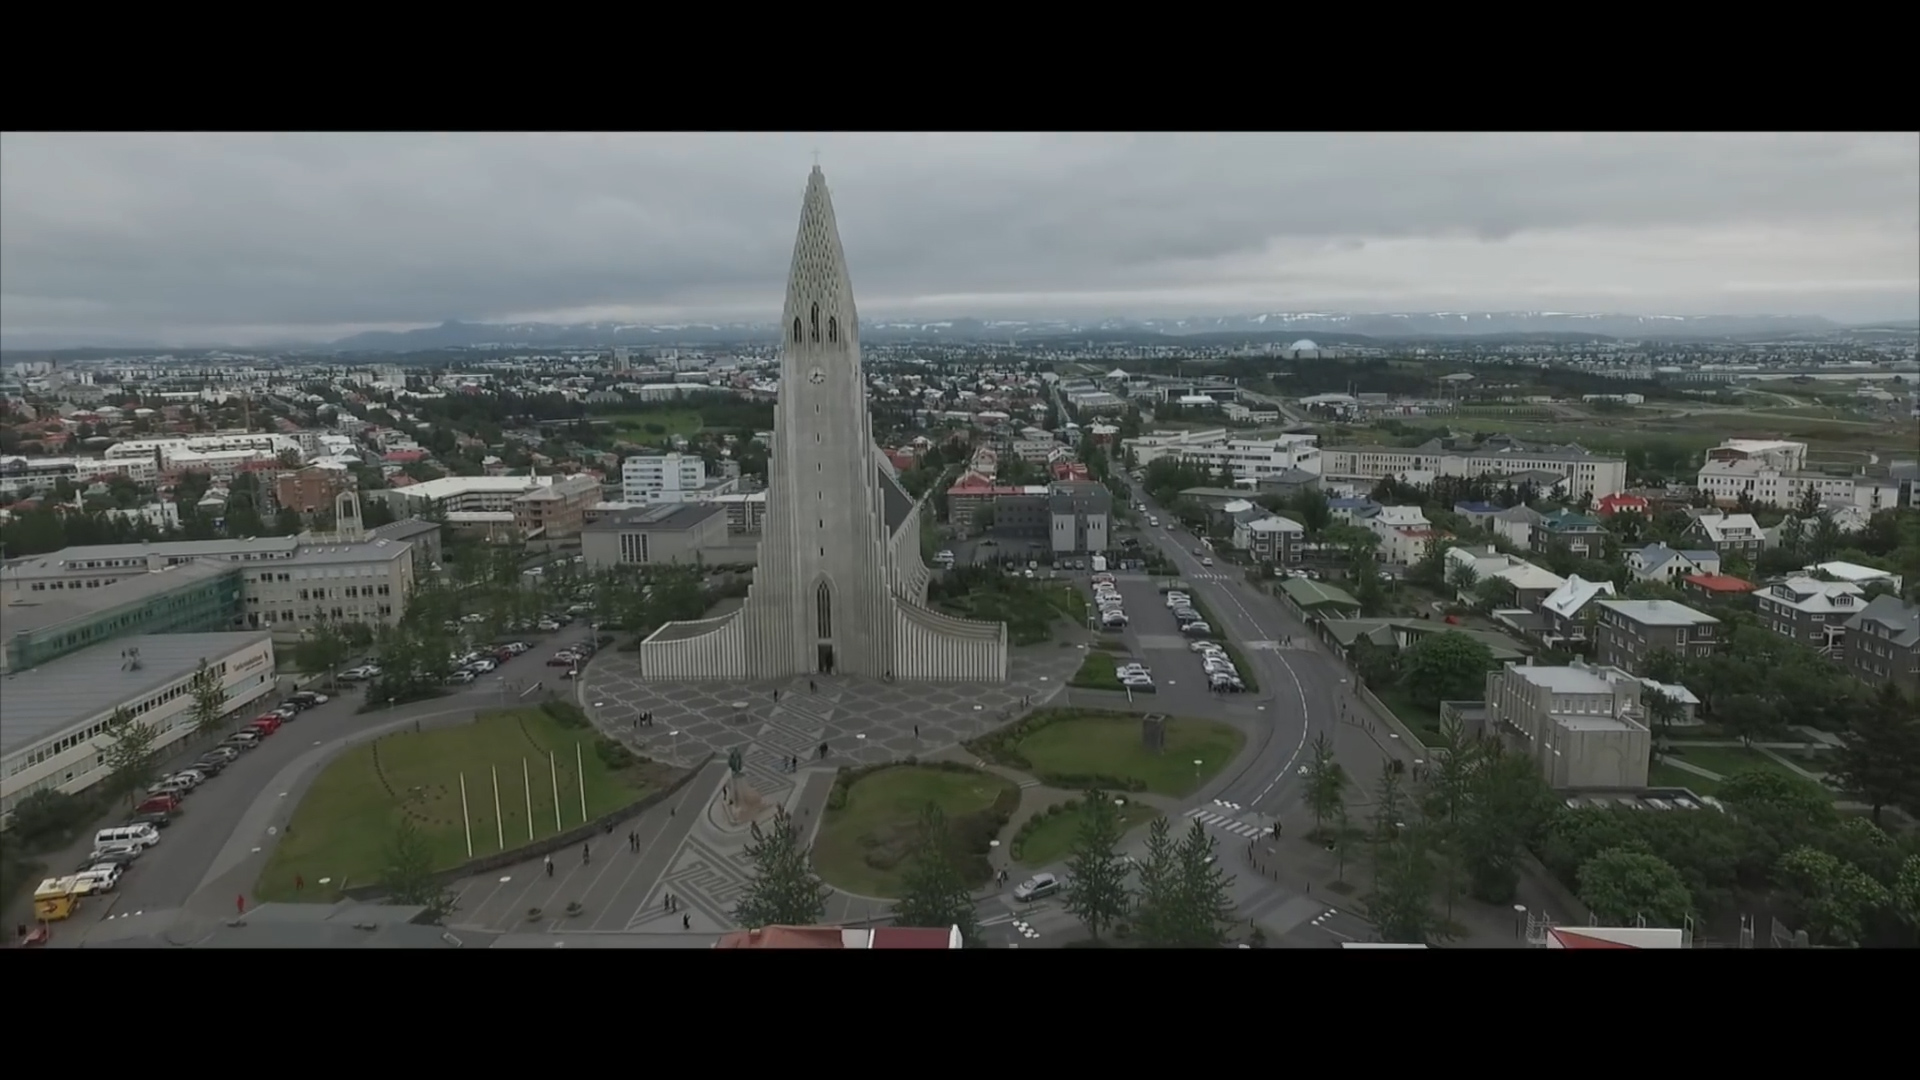 jim-west-central-church-iceland-aerial-4